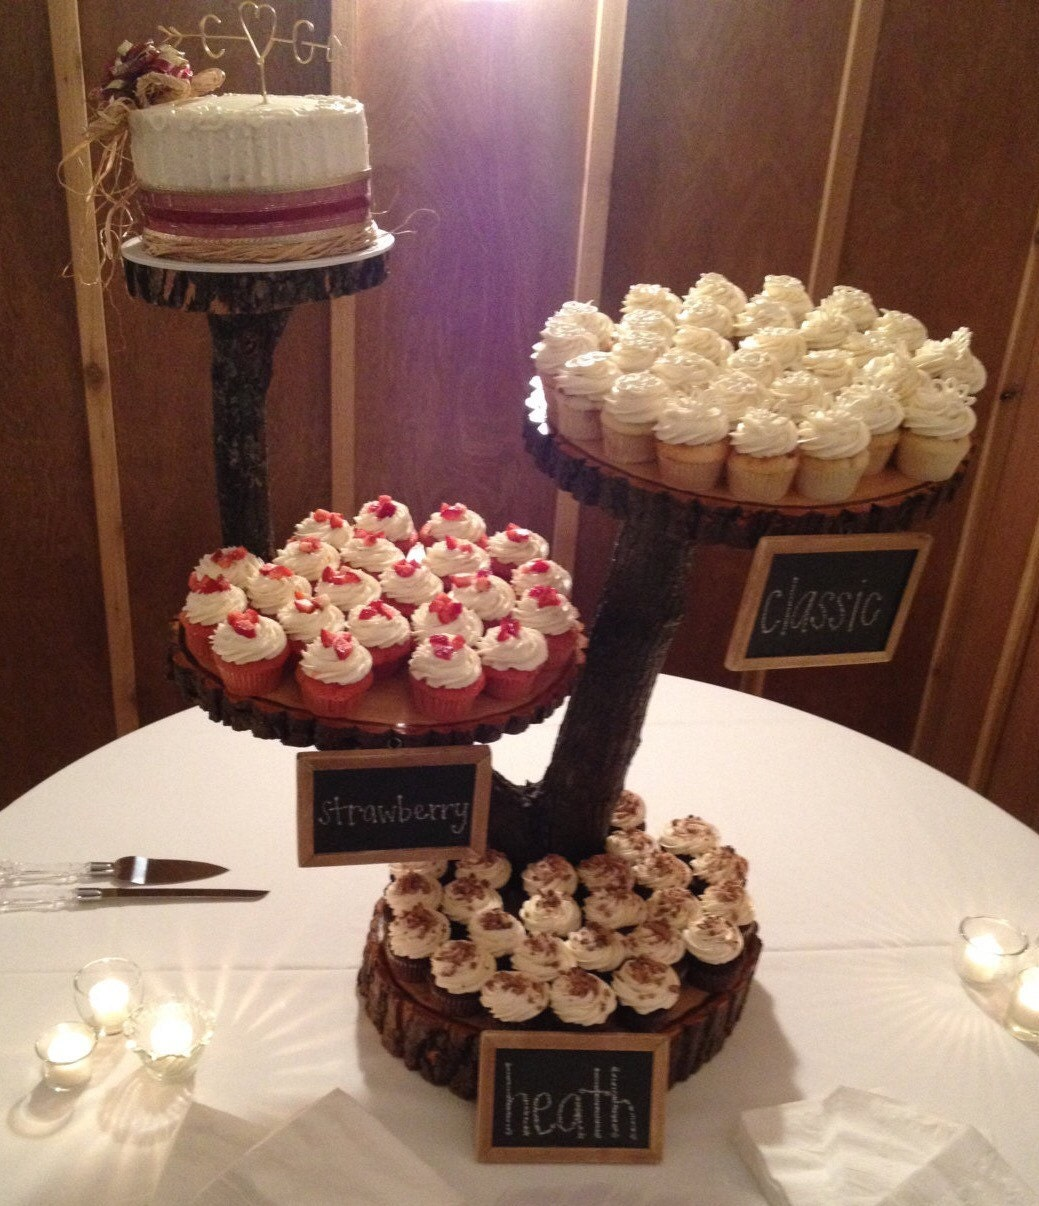 Rustic Cake Stand Rustic Cupcake Stand Wedding Decoration: 4 Tier Large Rustic Wood Cupcake Stand. Wedding Cupcake Stand